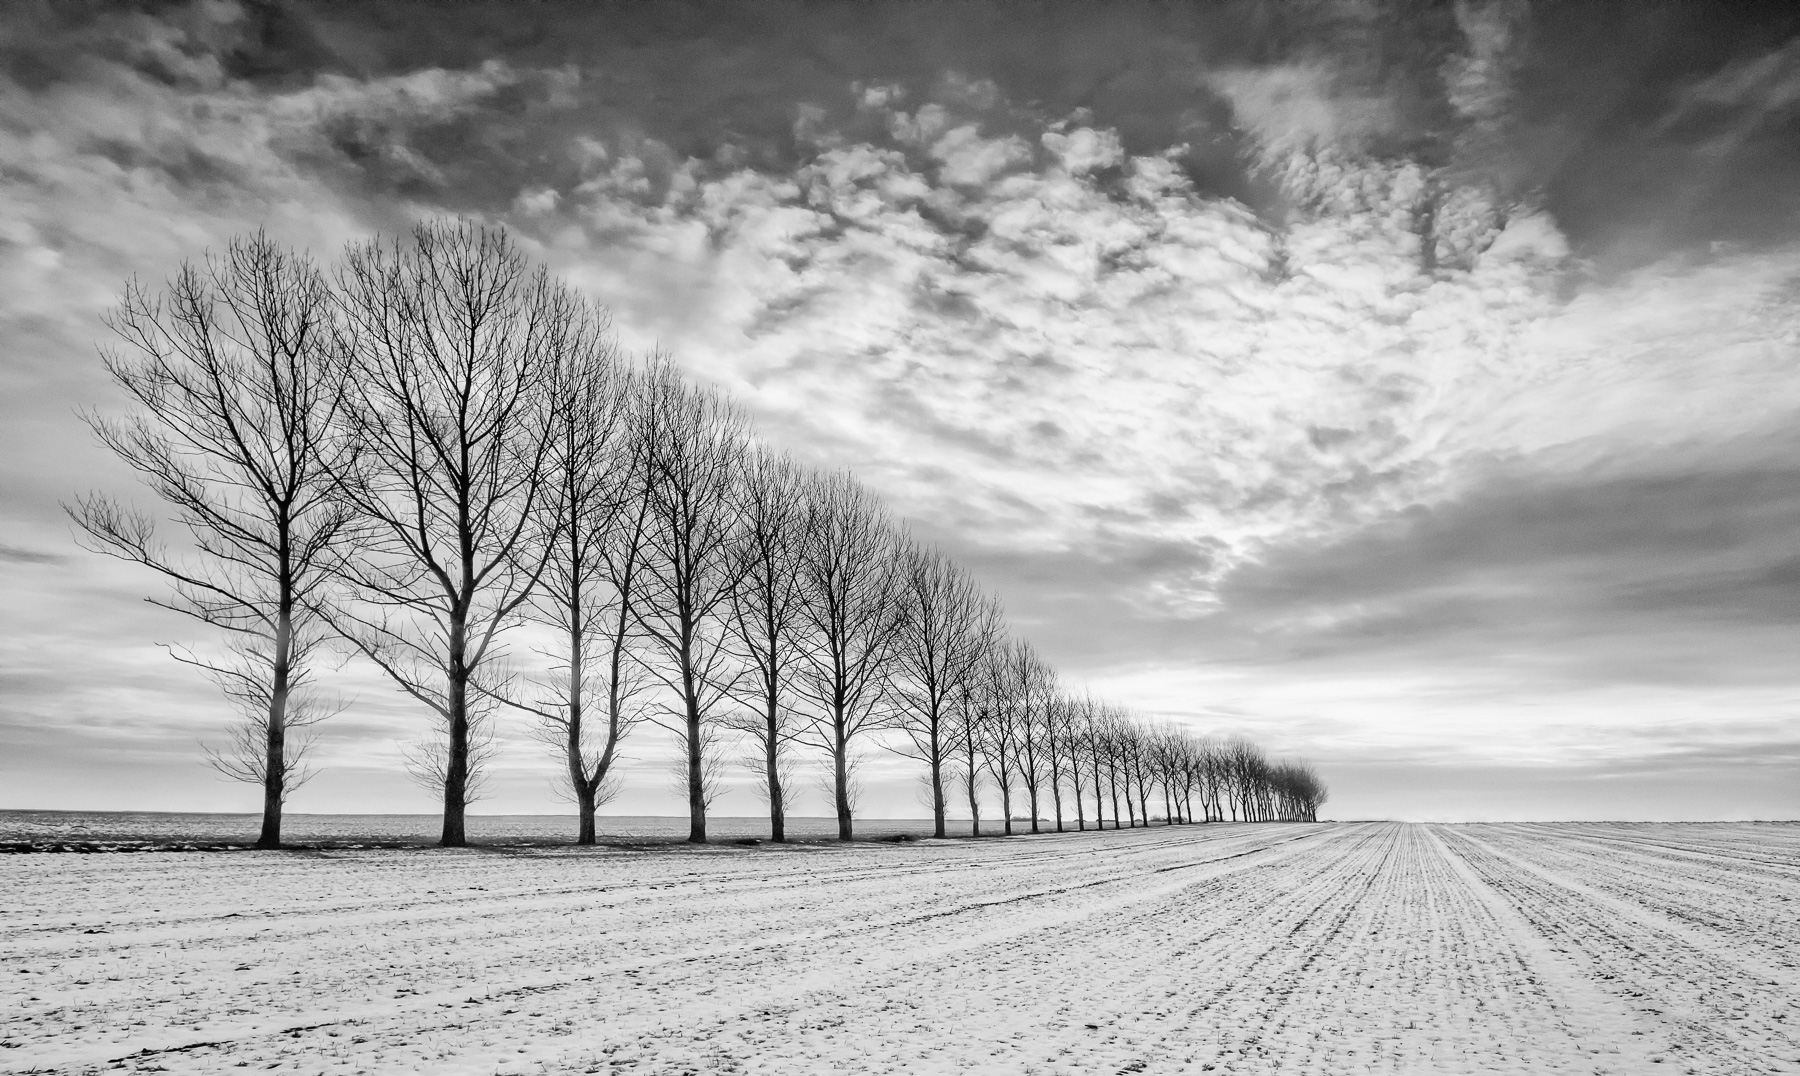 Ongar, Essex, Canon 550D, Sigma 10-20mm, ISO100, 13mm, 1/100s at f/11,. Tripod. © George Johnson